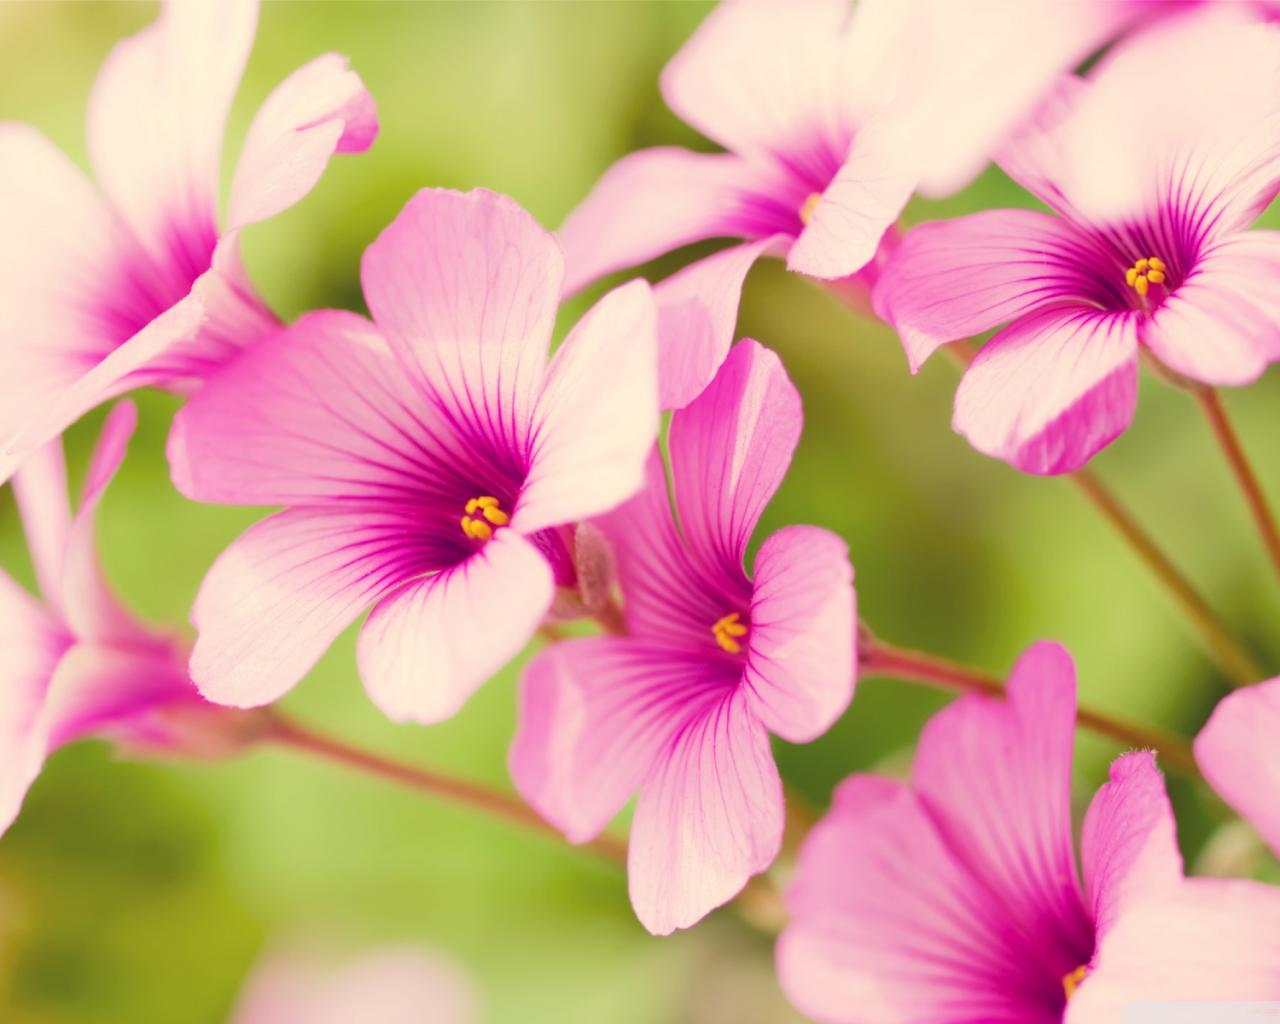 WWW Flower Wallpapers Free Download Com